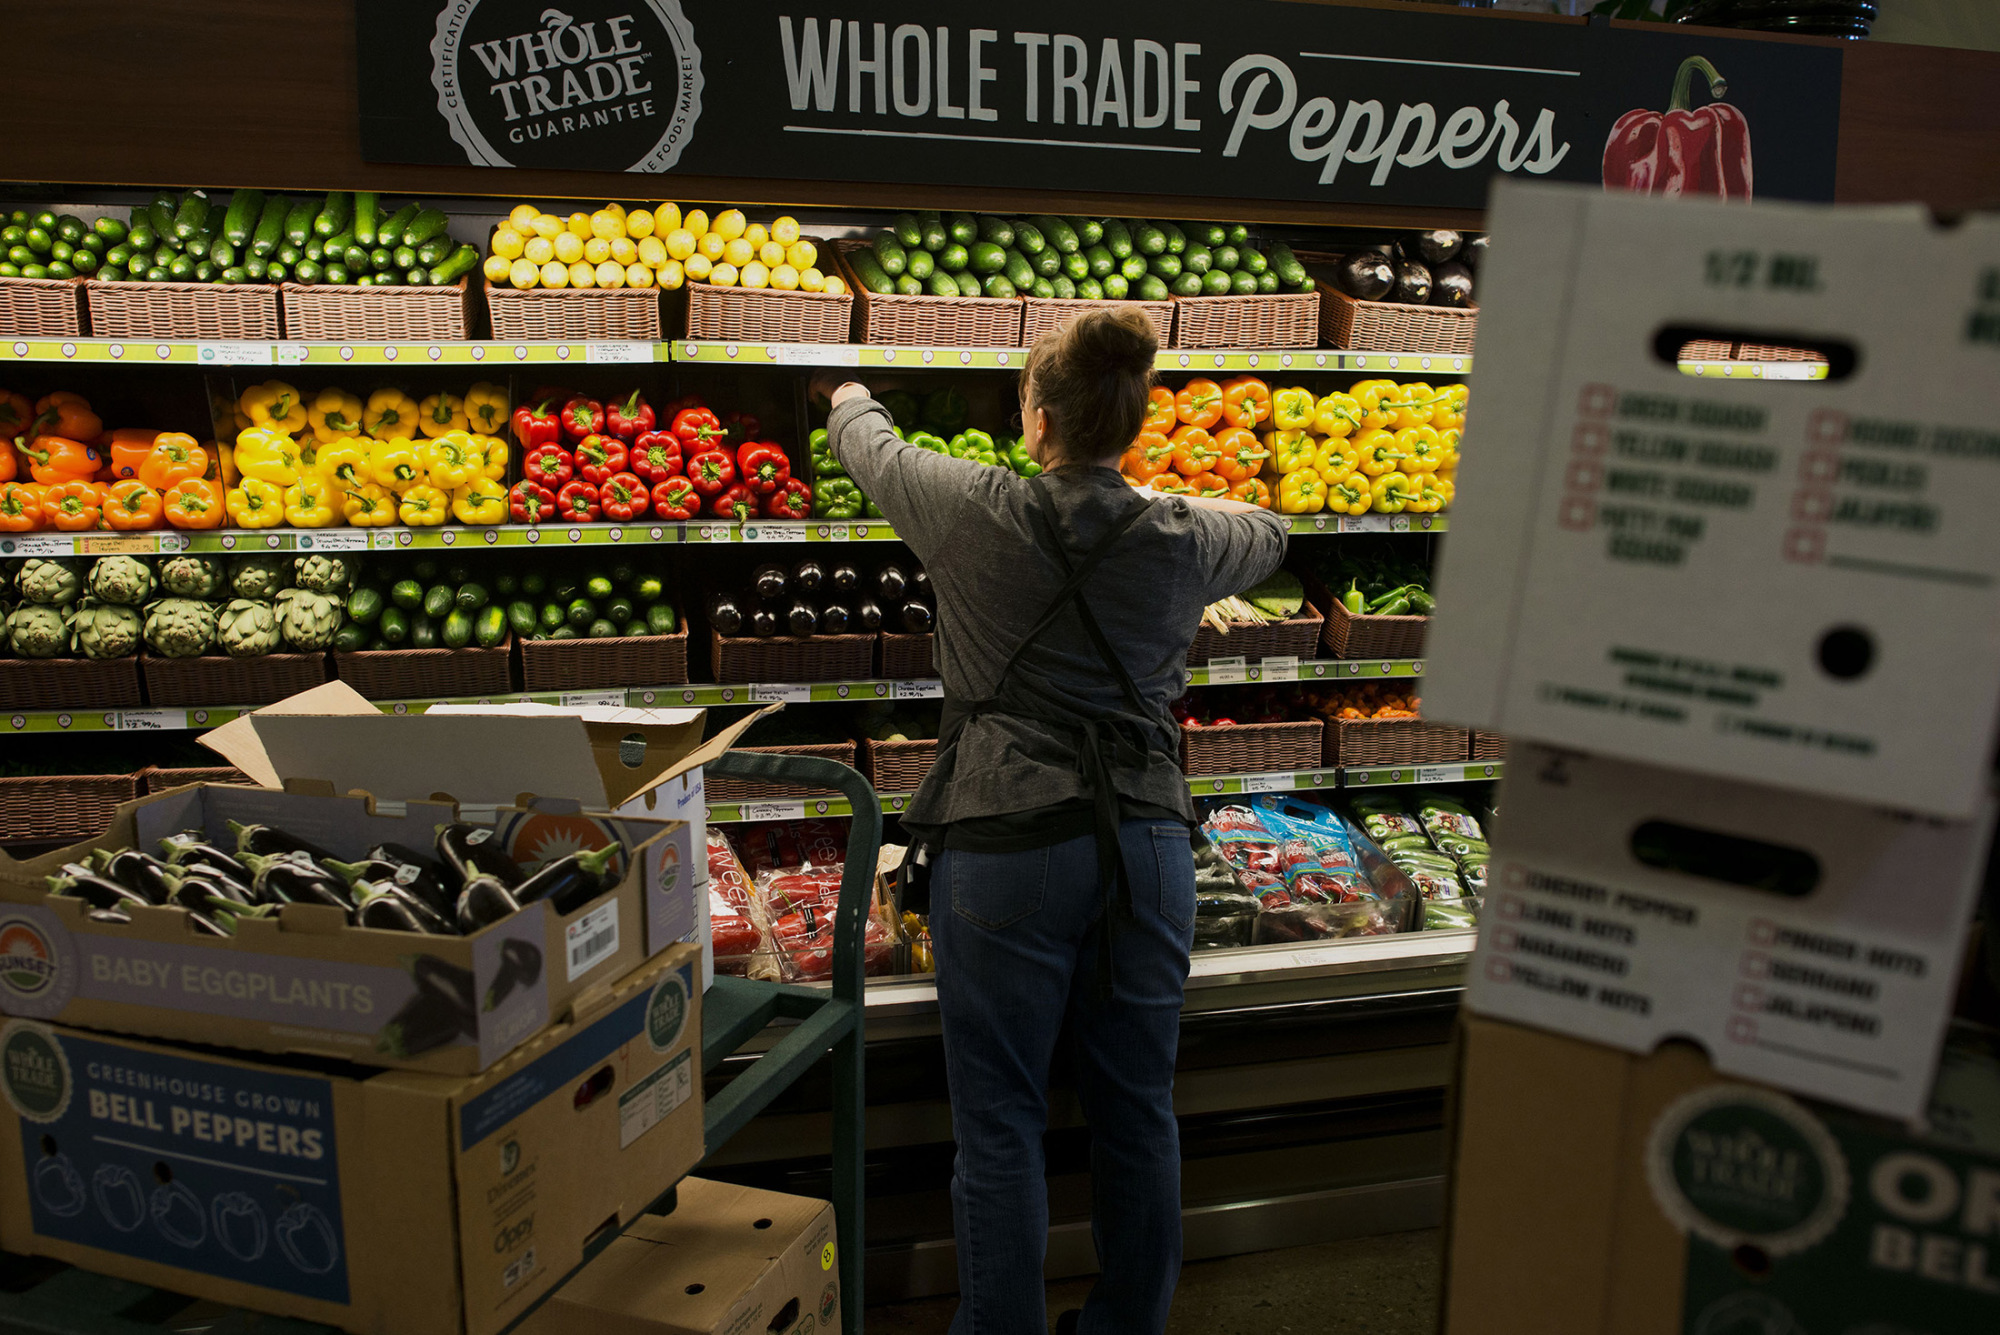 AN EMPLOYEE STOCKS the shelves with fresh peppers in the produce section of a Whole Foods Market Inc. store in Dublin, Ohio, U.S., on Friday, Nov. 7, 2014. Whole Foods Market Inc. posted fiscal fourth-quarter profit that topped analysts' estimates as the grocery-store chain slashed prices to win over bargain-hunting shoppers. The shares soared the most in four years. BLOOMBERG FILE PHOTO/ TY WRIGHT